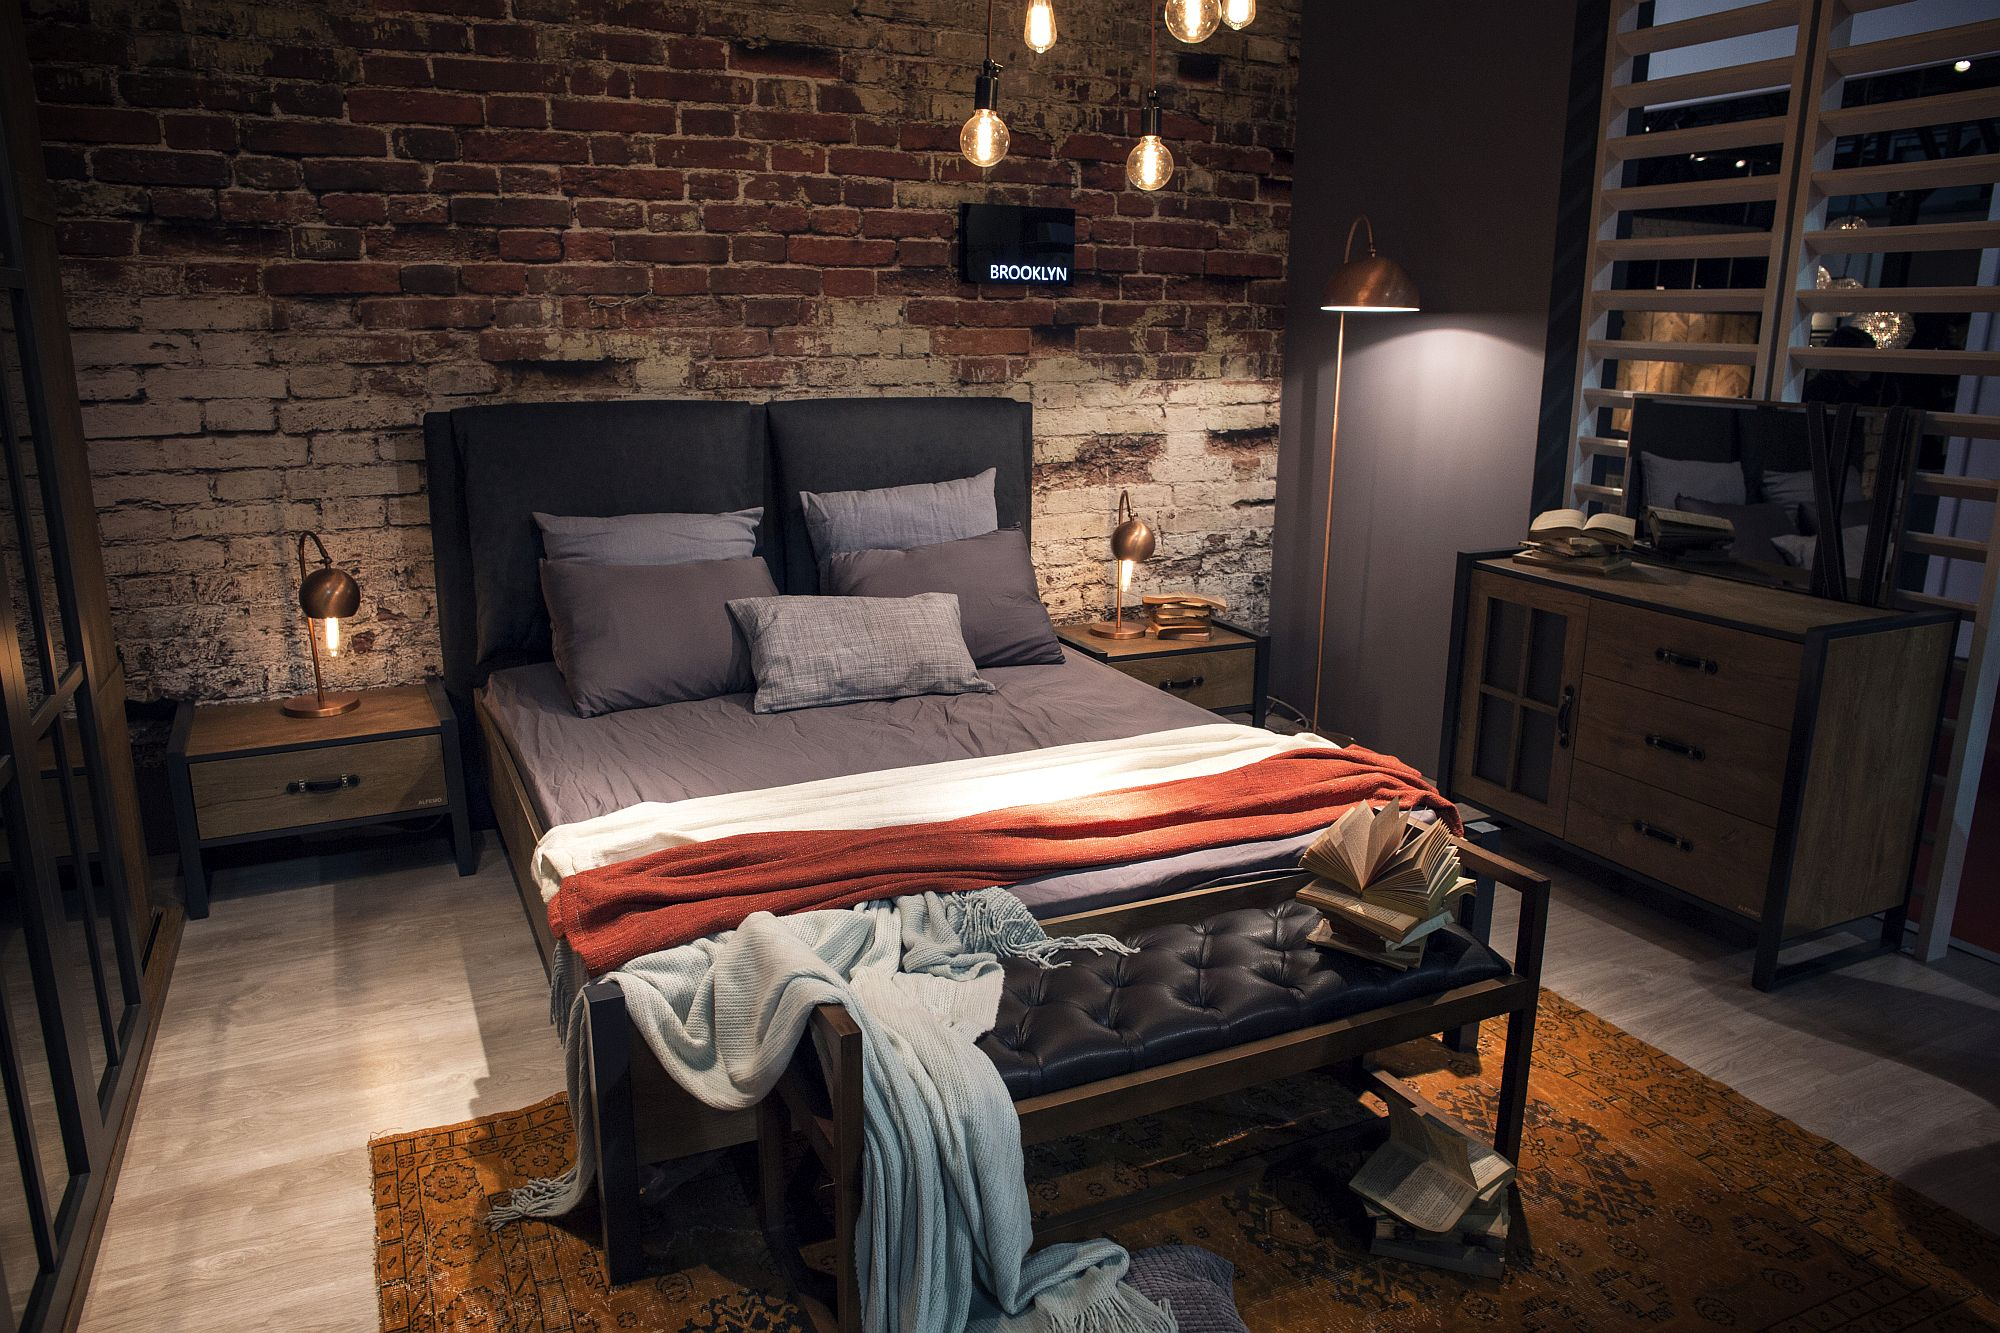 Floor lamps and bedside lighting with metallic finish bring industrial style to the bedroom